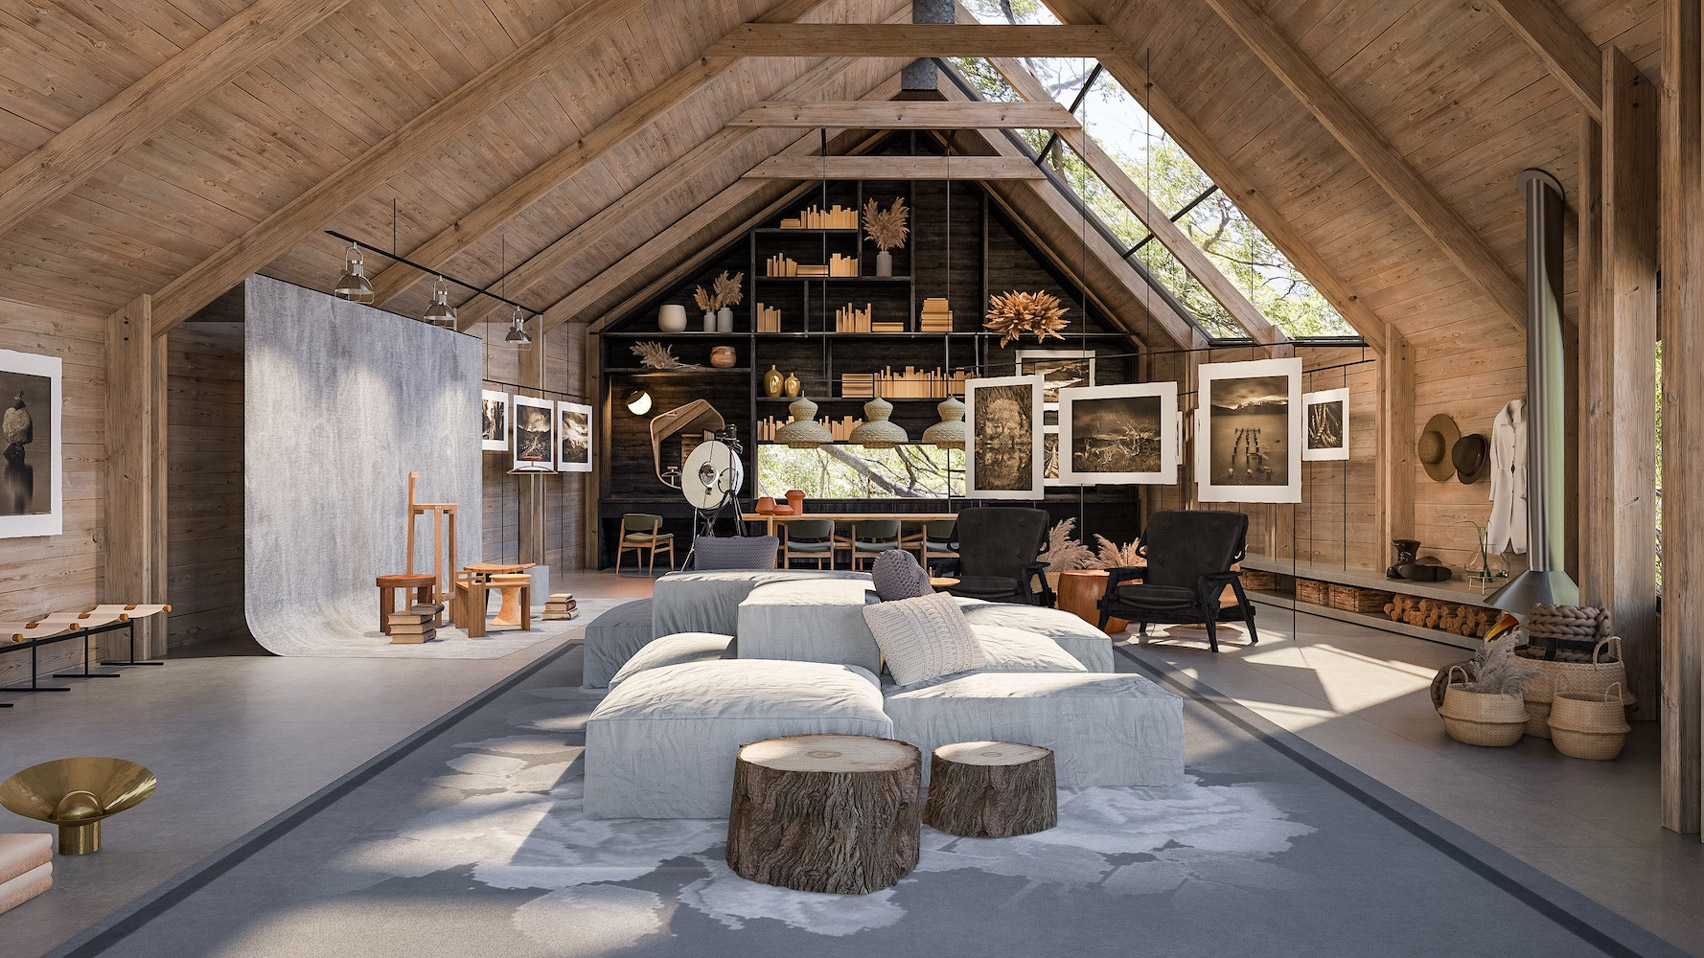 Rendering of a guest studio for Mapu in Chile